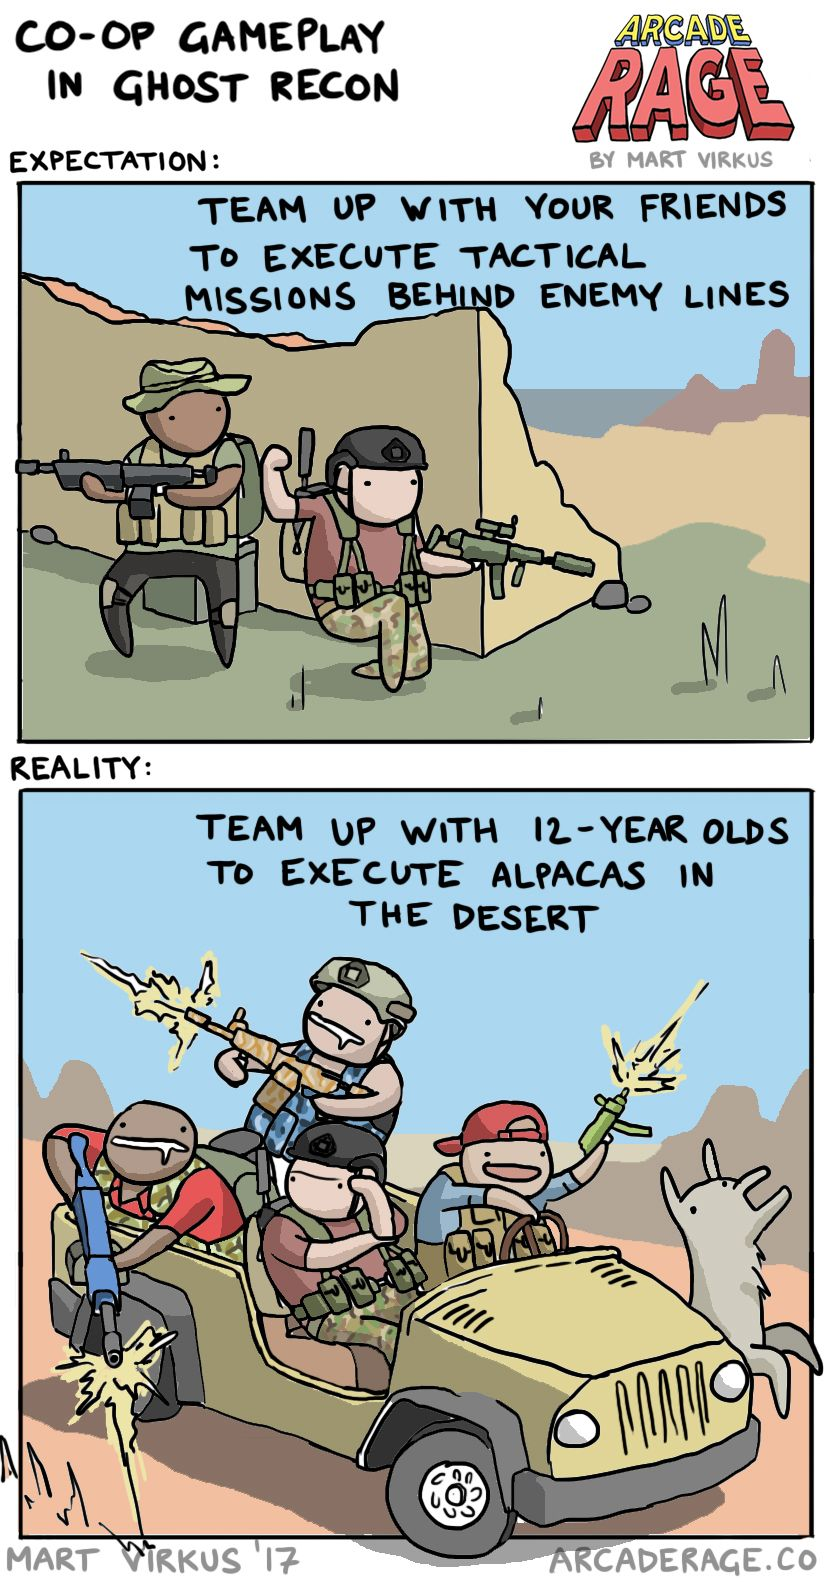 Ghost Recon Wildlands multiplayer expectations vs